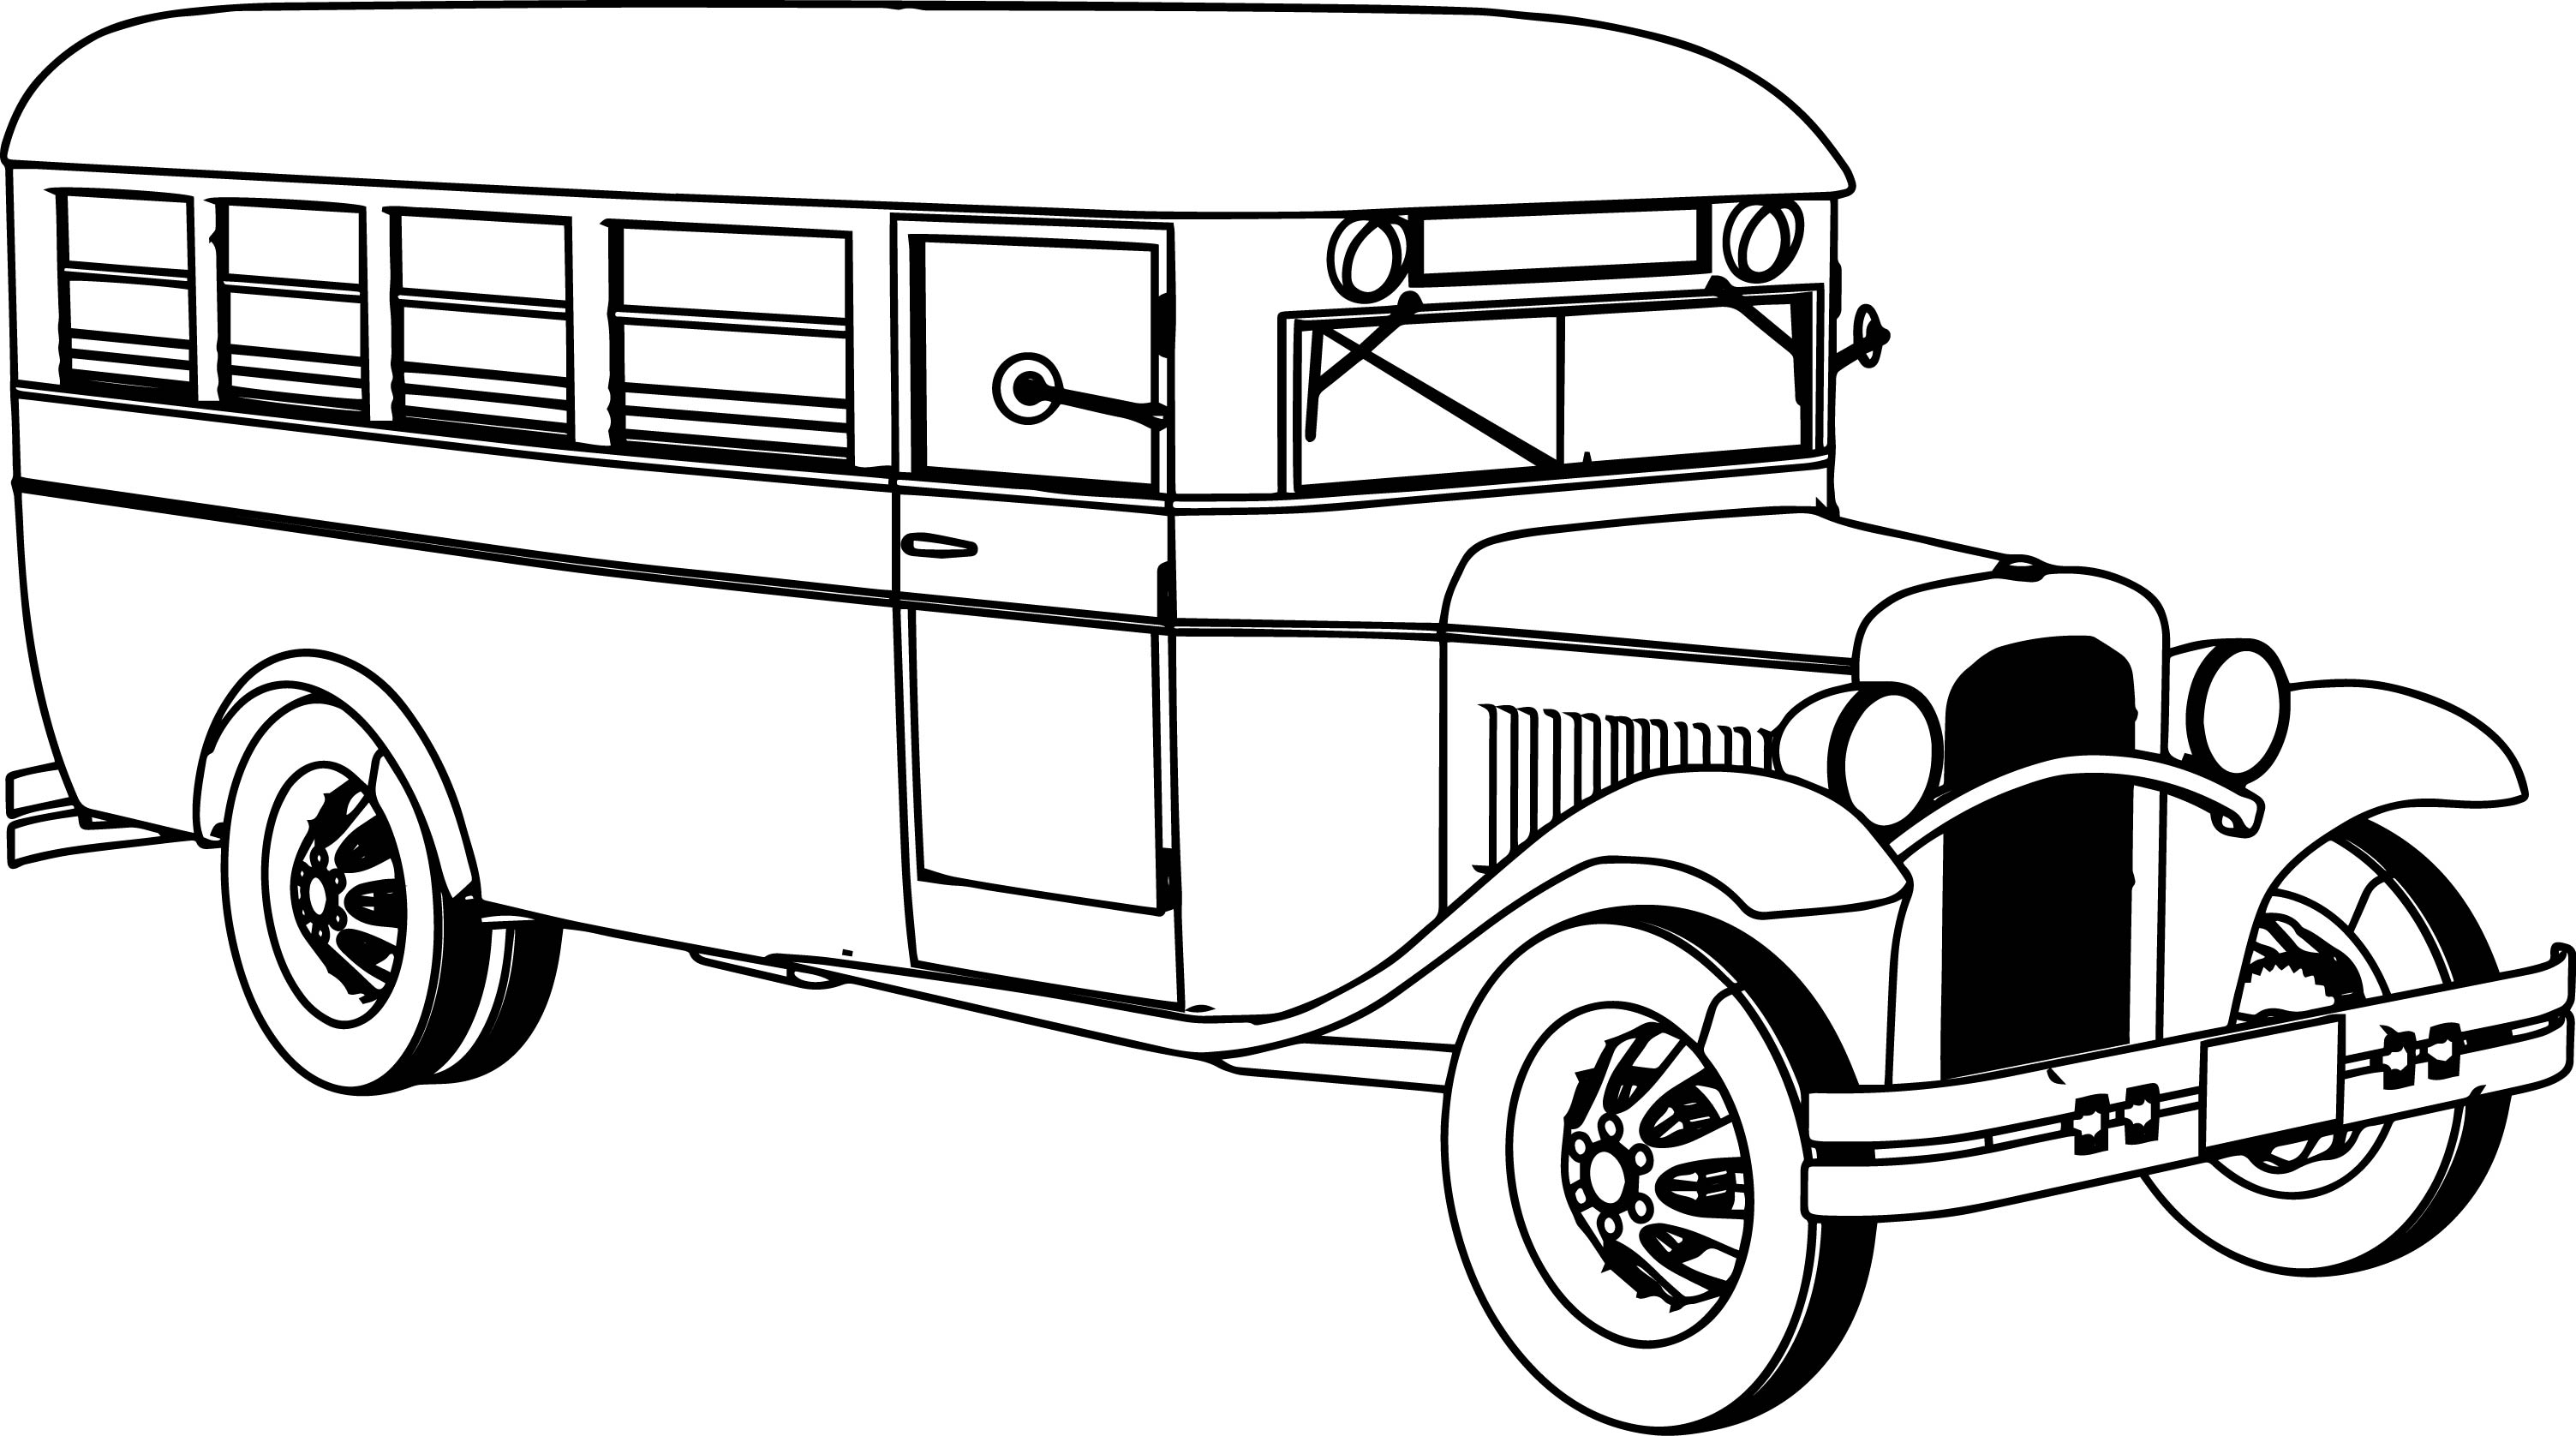 3007x1676 Printable School Bus Coloring Pages For Kids Free Book Magic